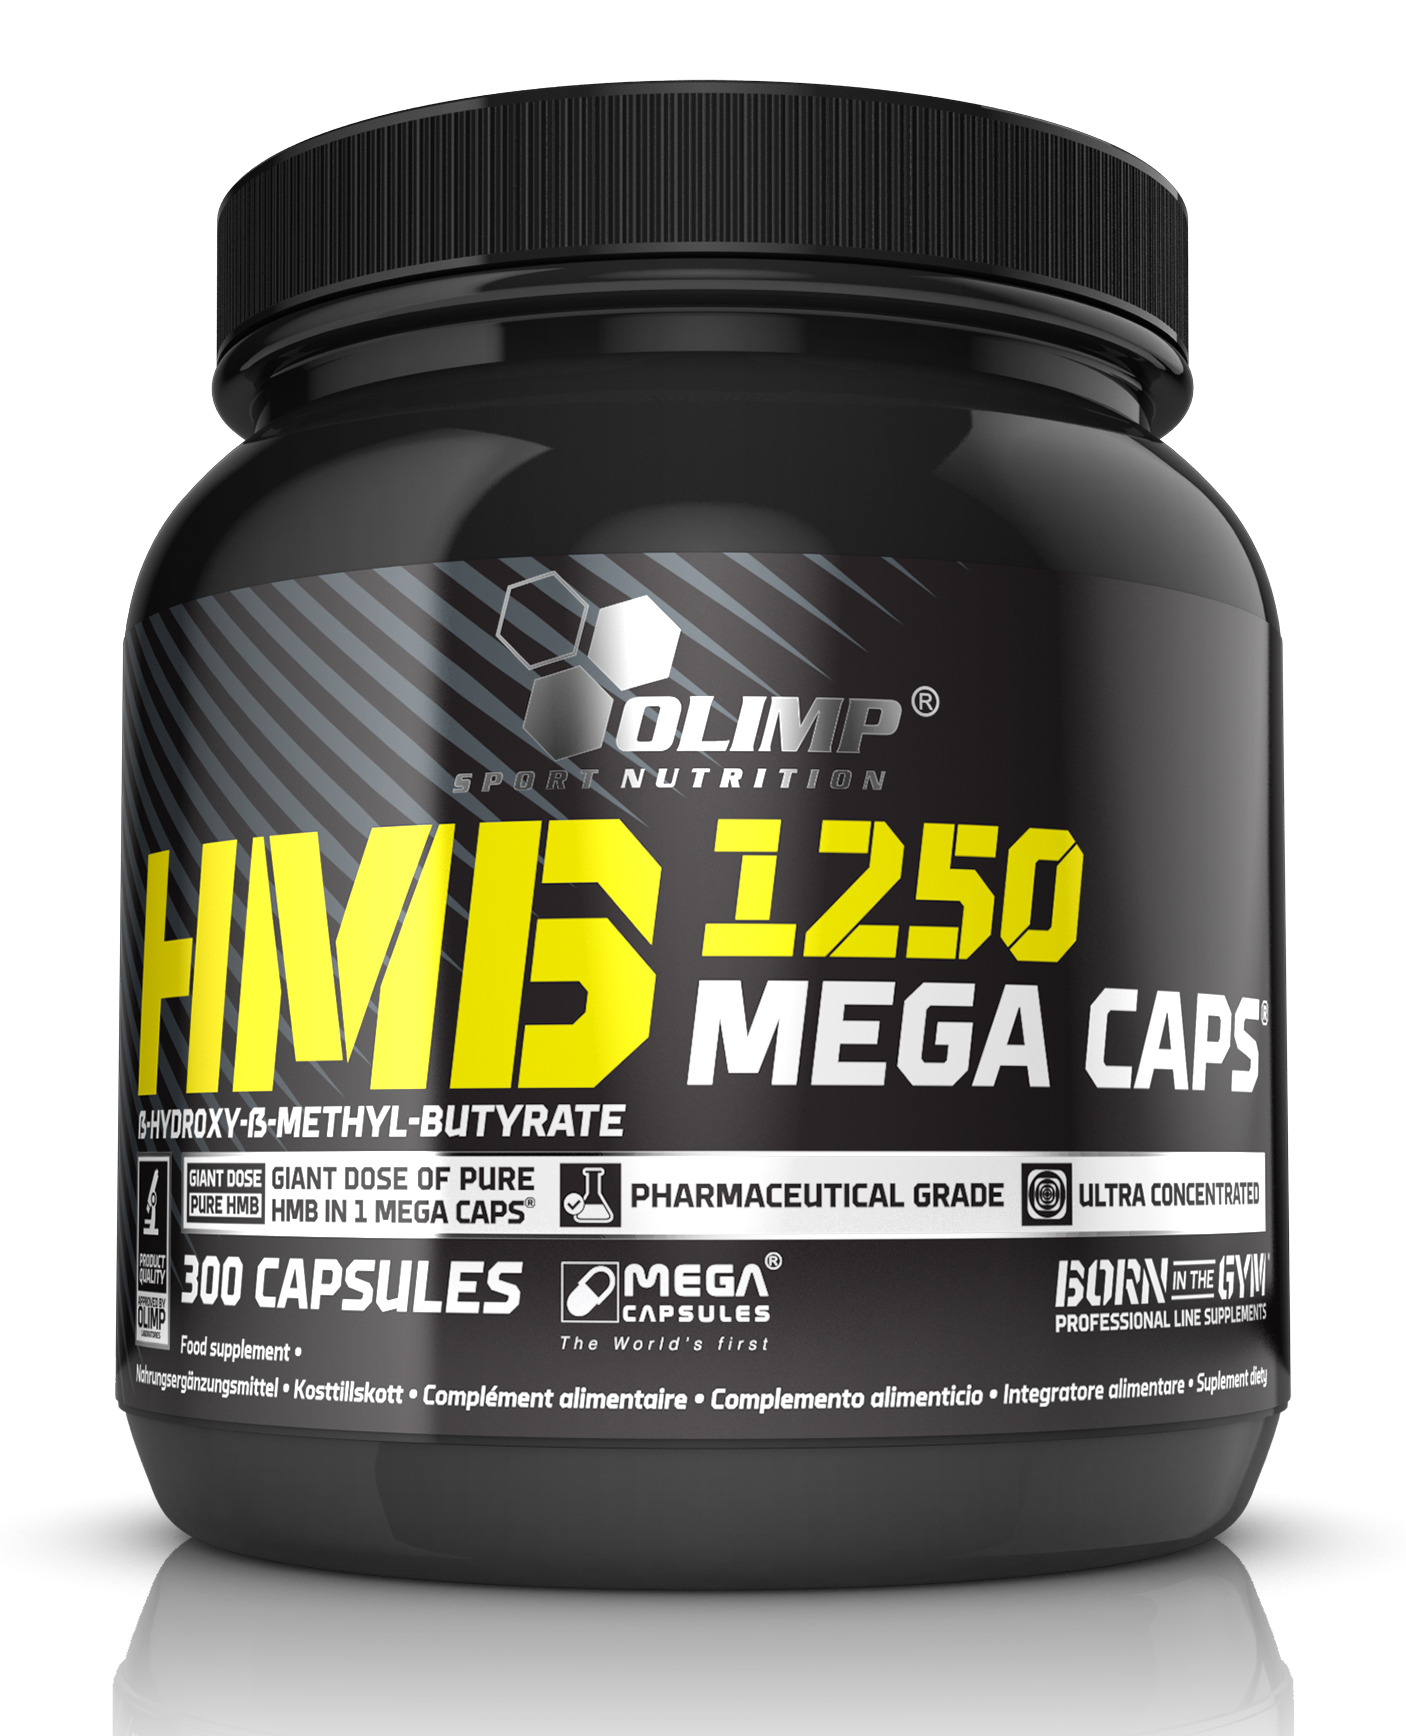 HMB MEGA CAPS Olimp (300 cap, 1 cap = 1250 mg)